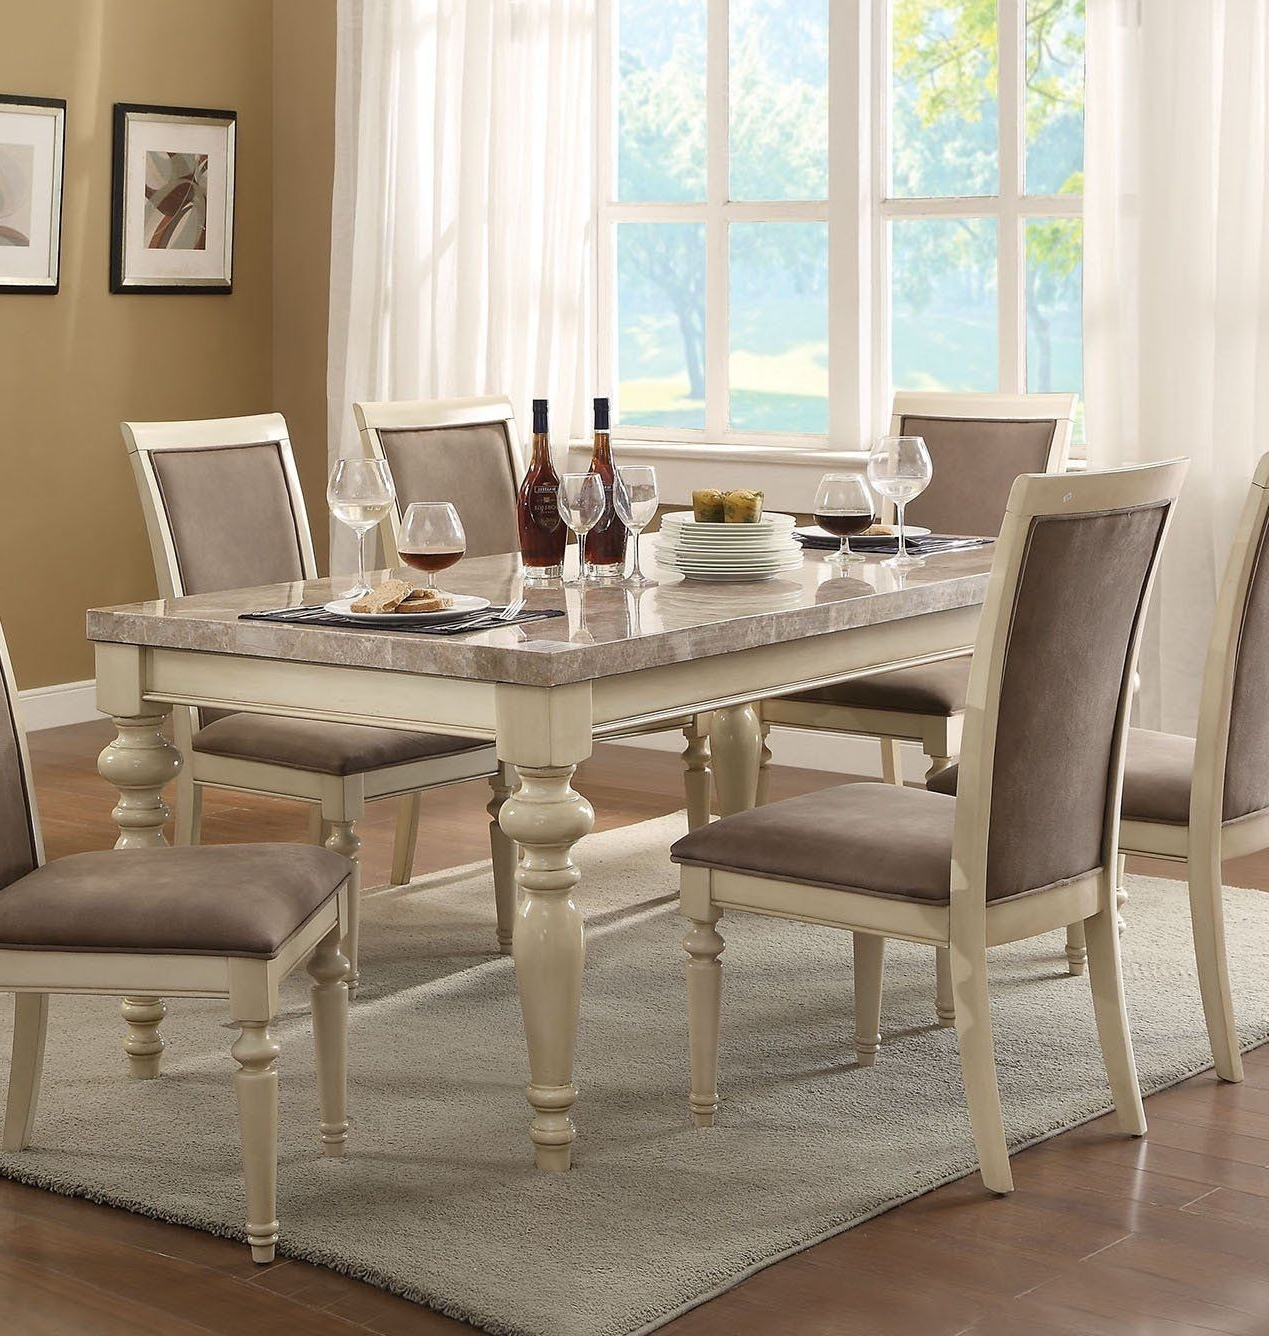 Caira 7 Piece Rectangular Dining Sets With Upholstered Side Chairs For Famous Acme 71705 Ryder Antique White Marble Top Dining Table (View 4 of 25)